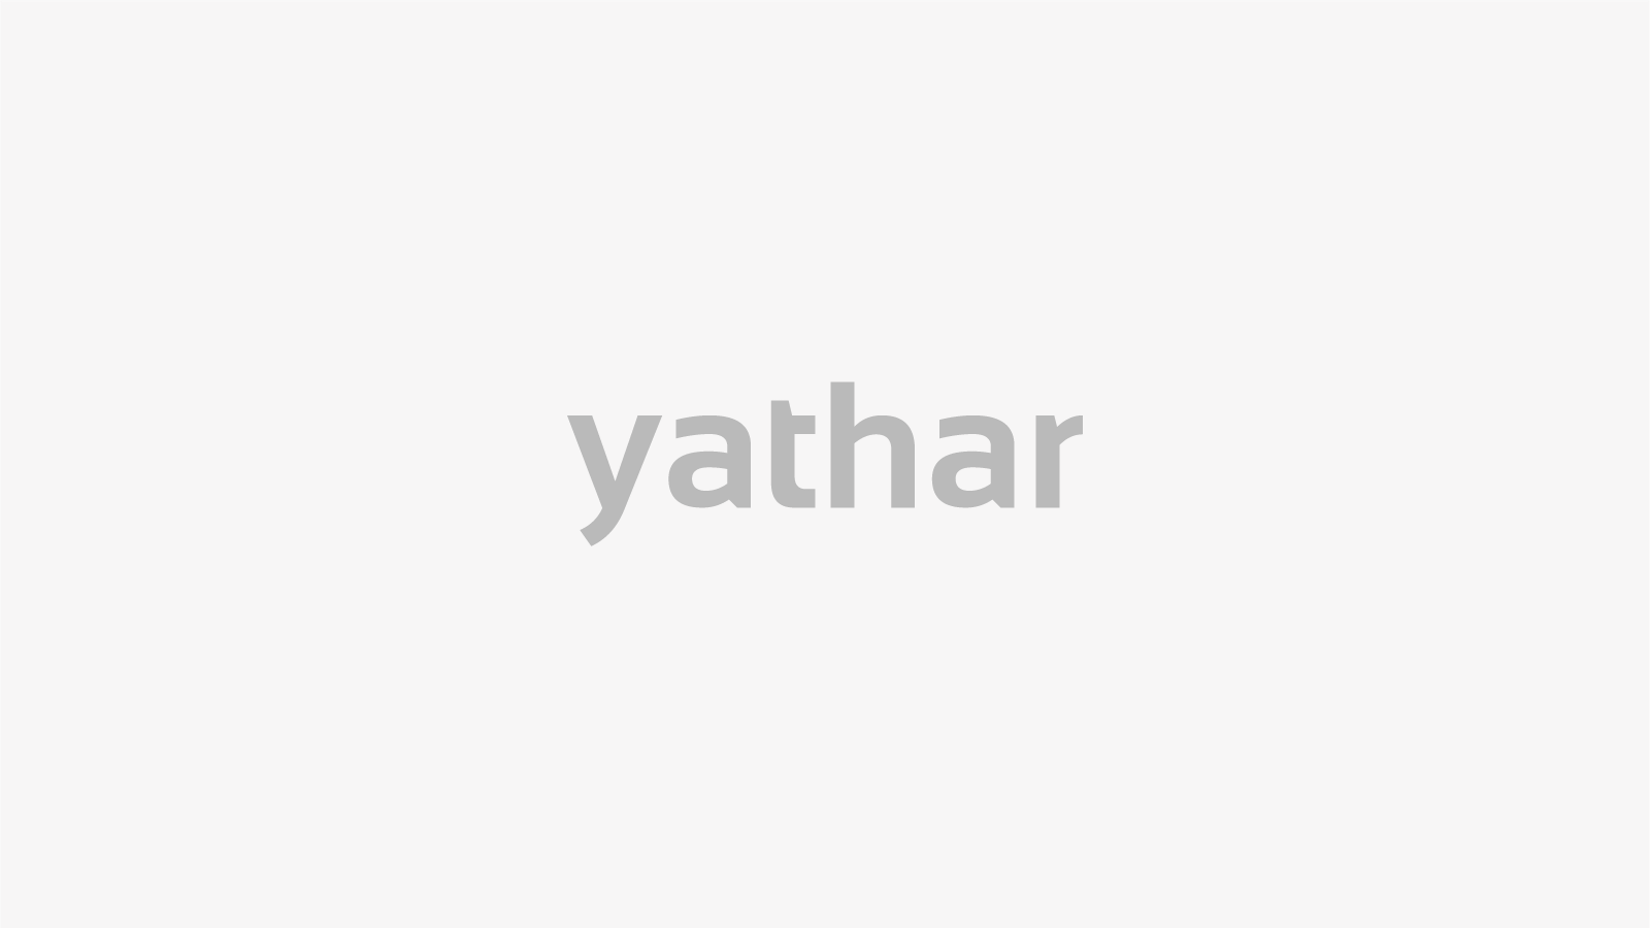 Zephar Coffee & Restaurant | yathar